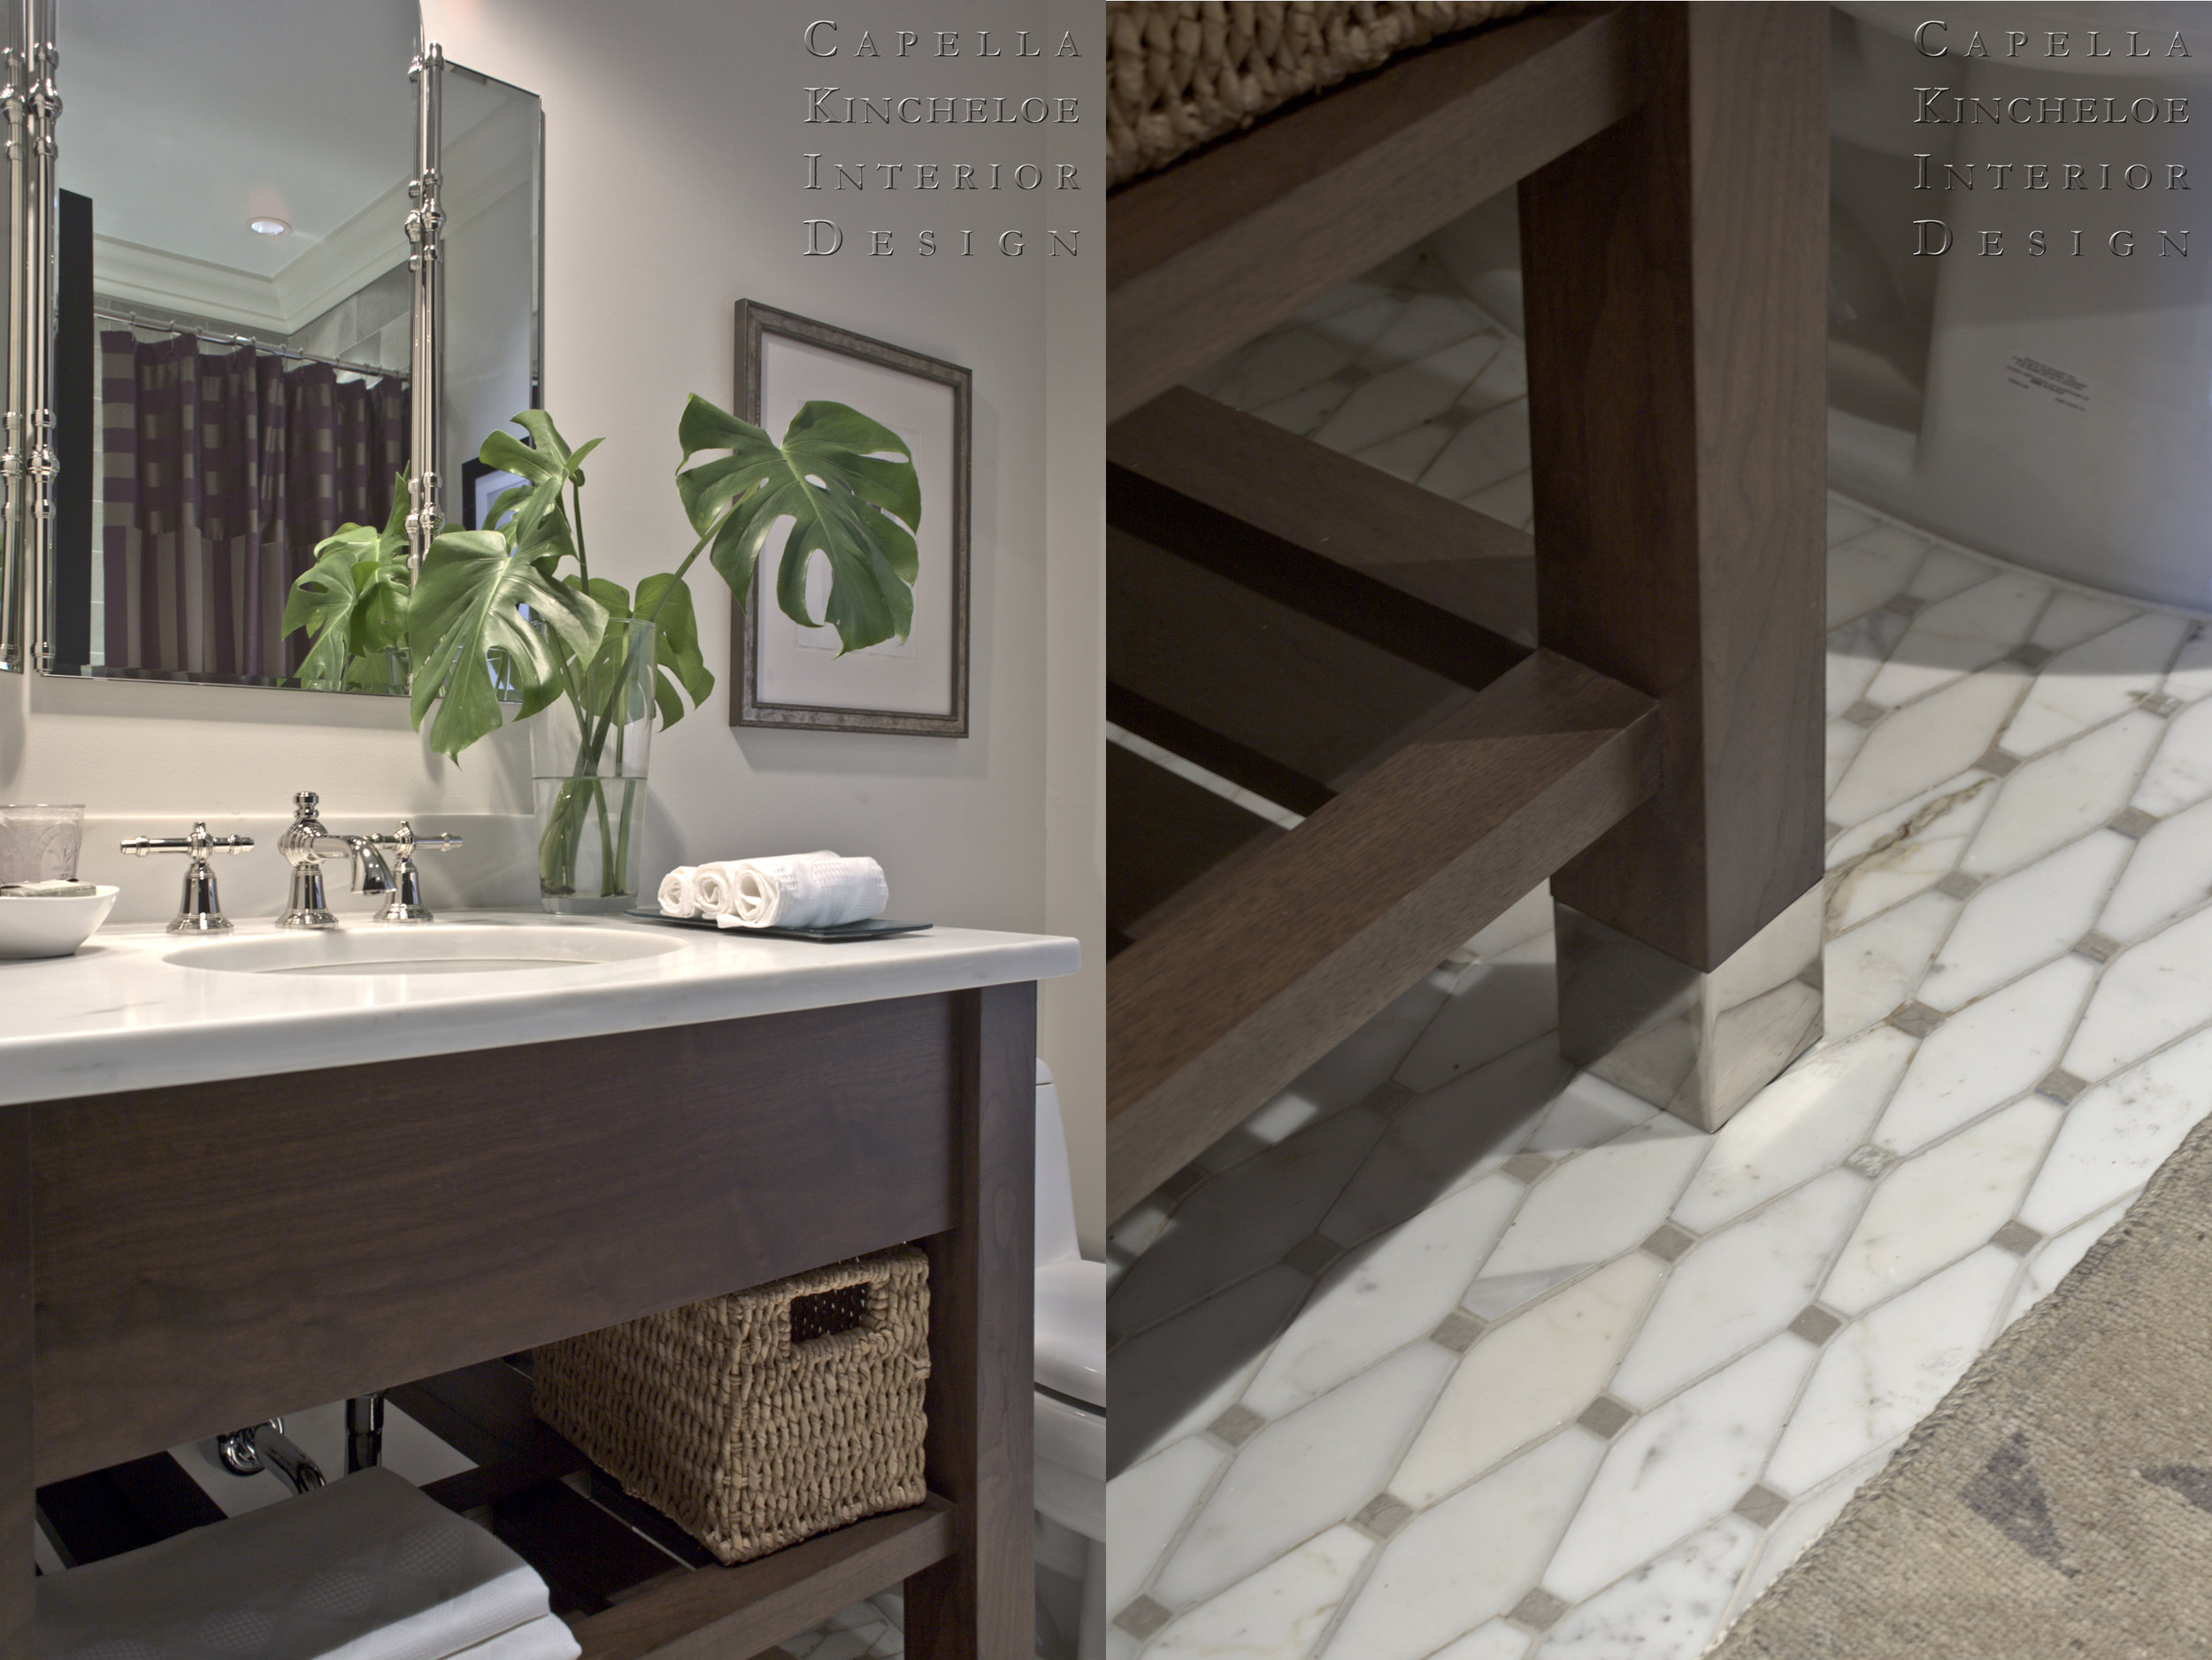 Cute transitional bathroom with Michael Smith for Kallista fixtures, custom vanity, mosaic floor tile